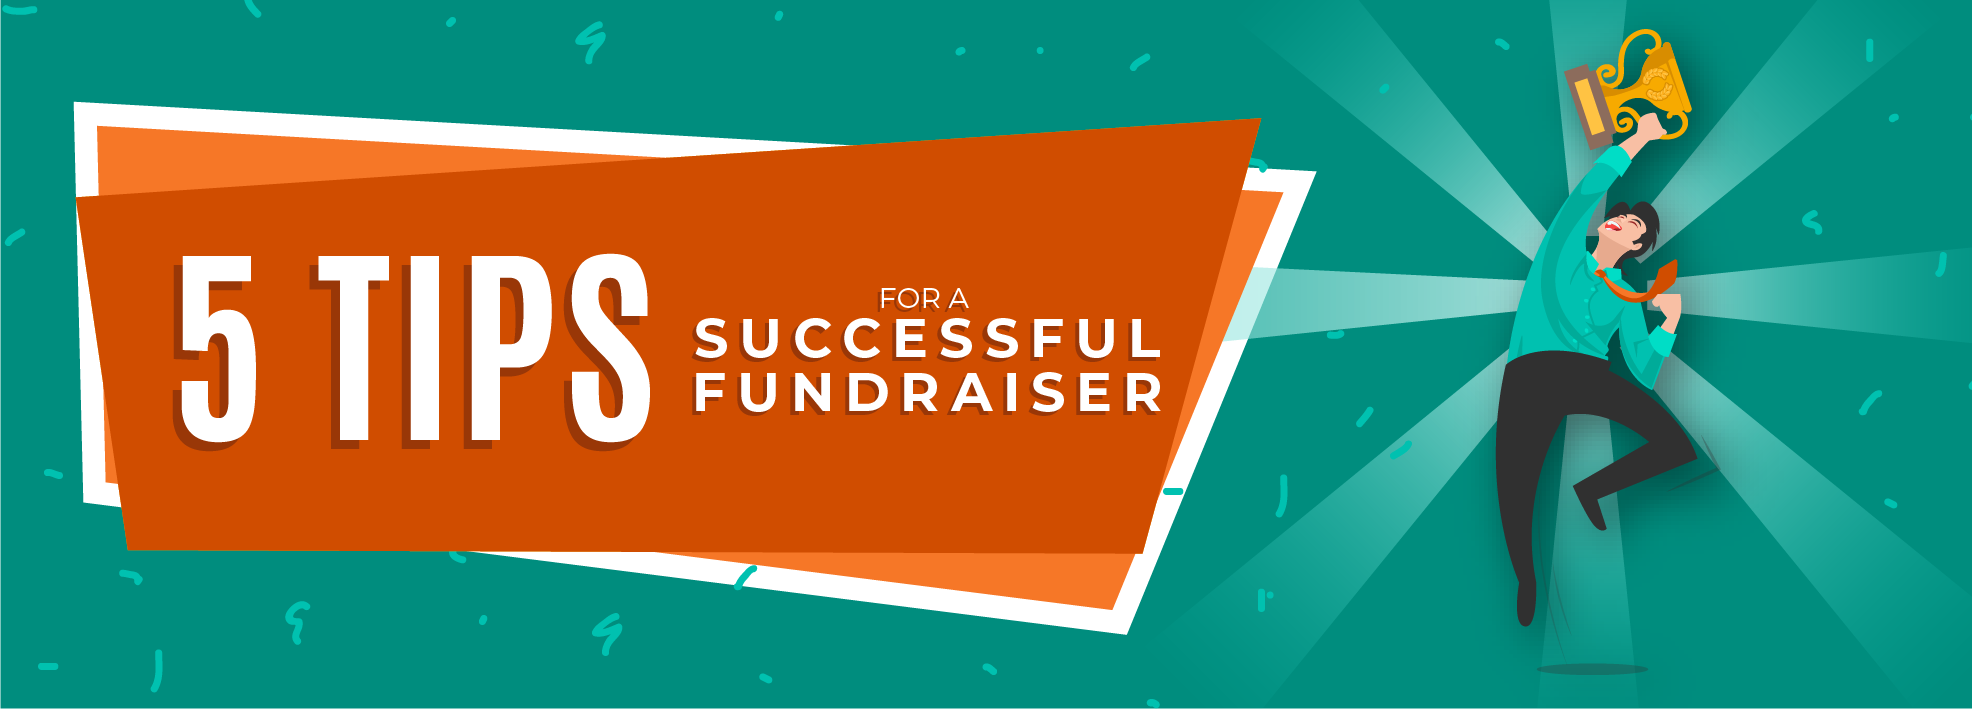 Five Tips for a Successful Fundraiser